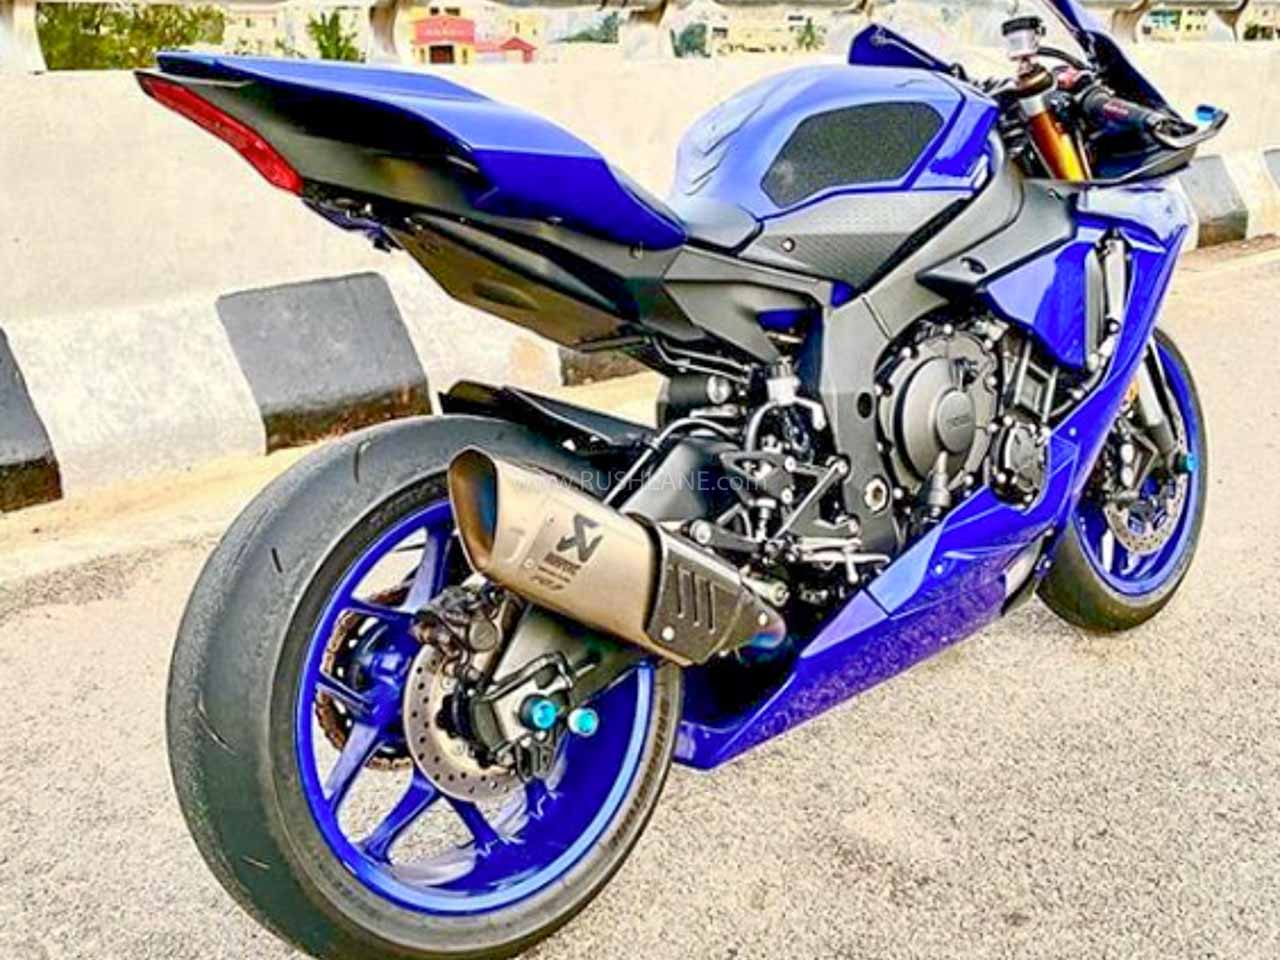 Yamaha R1 confiscated by Bangalore Police